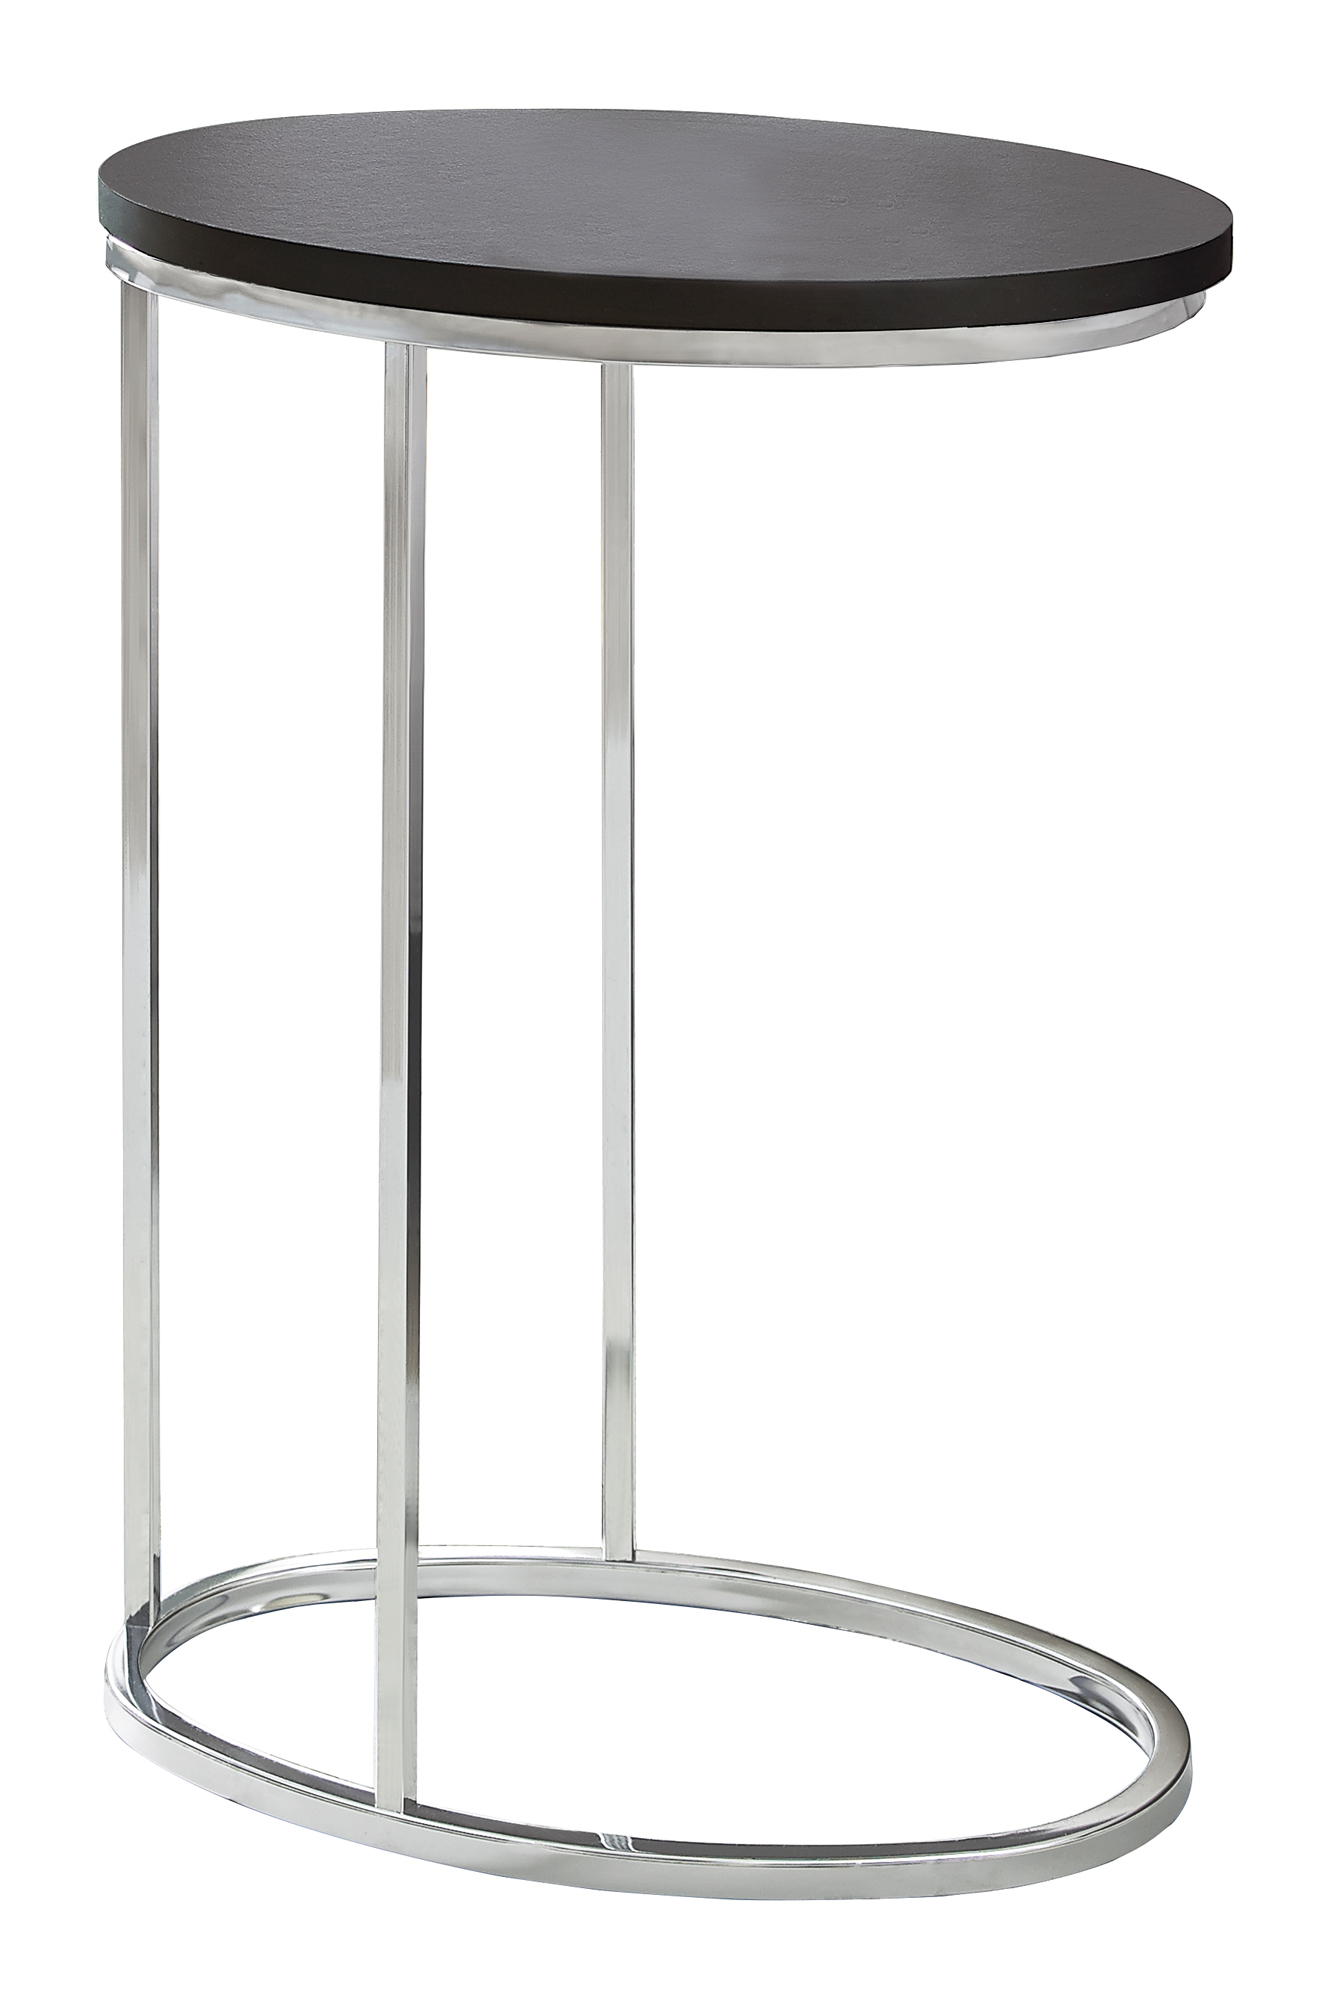 - ACCENT TABLE - OVAL / CAPPUCCINO WITH CHROME METAL - Victoria Rose